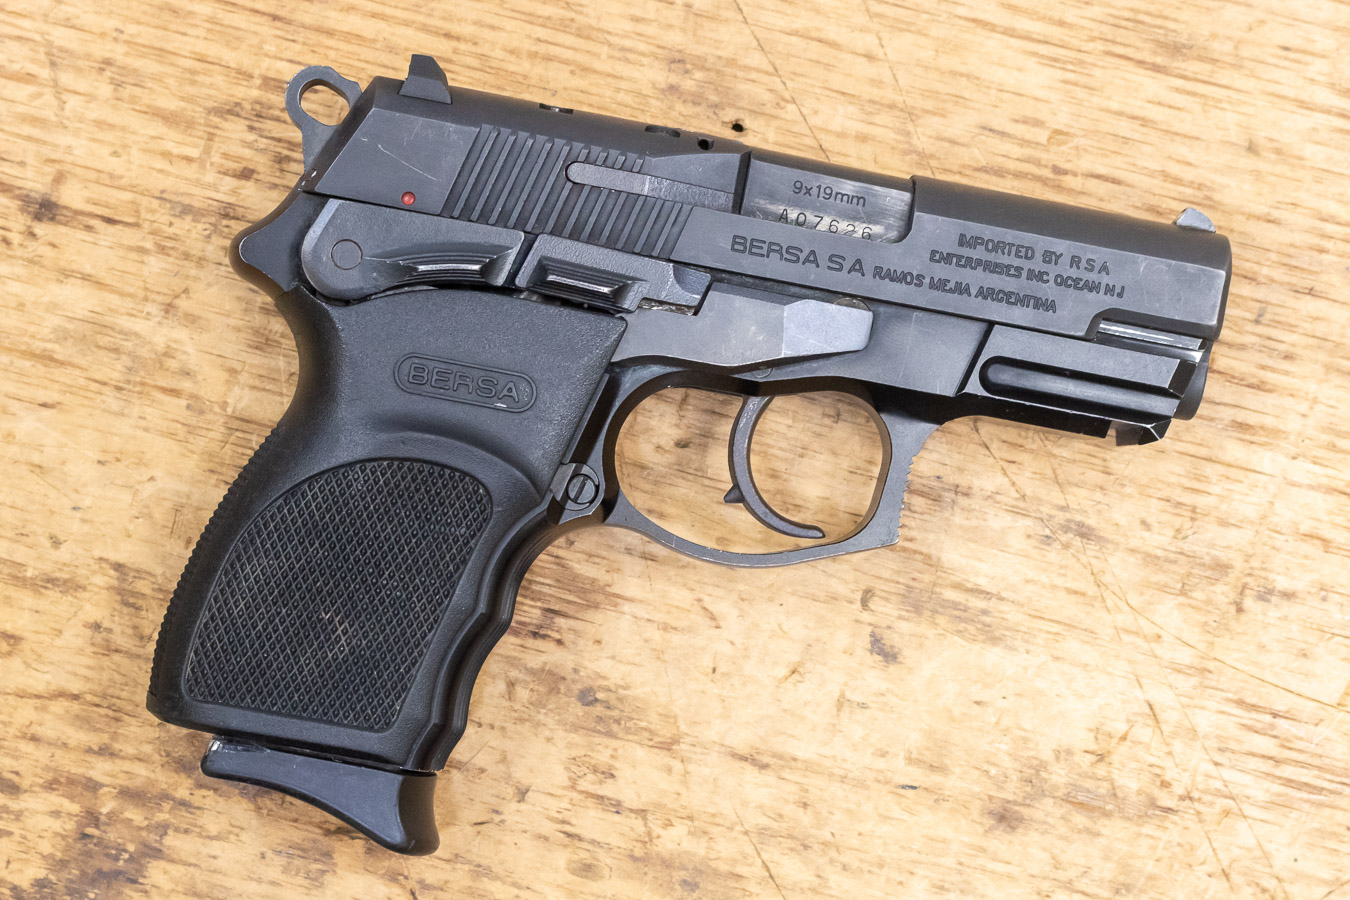 Thunder 9 Ultra Compact Pro 9mm 13-Round Used Trade-in Pistol